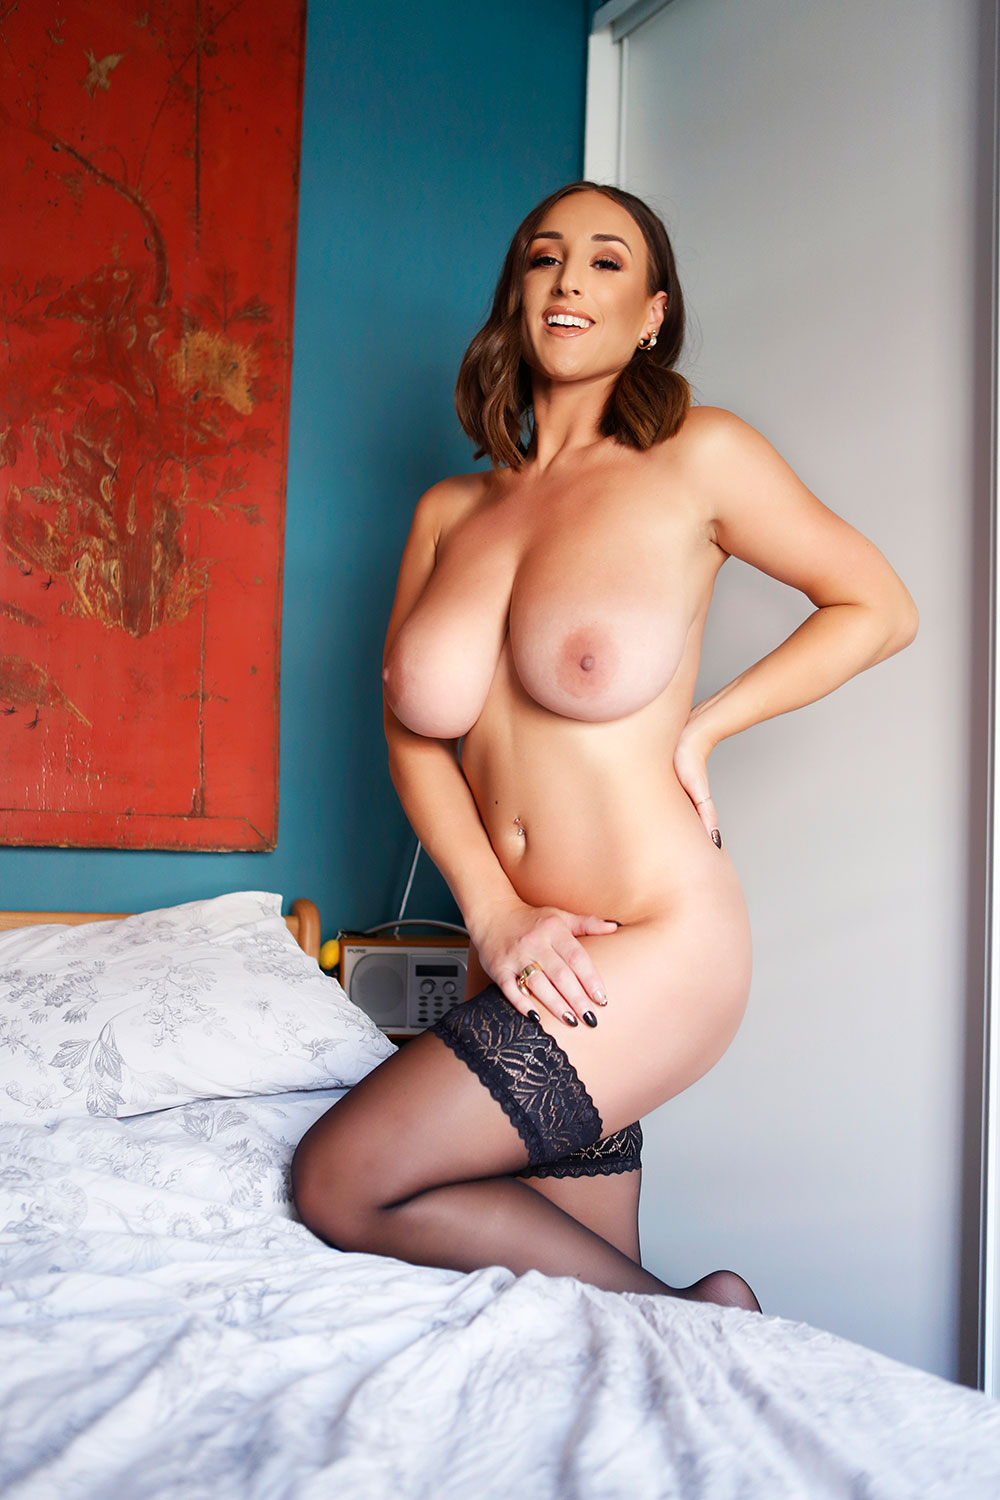 stacey poole topless 2021 calendar